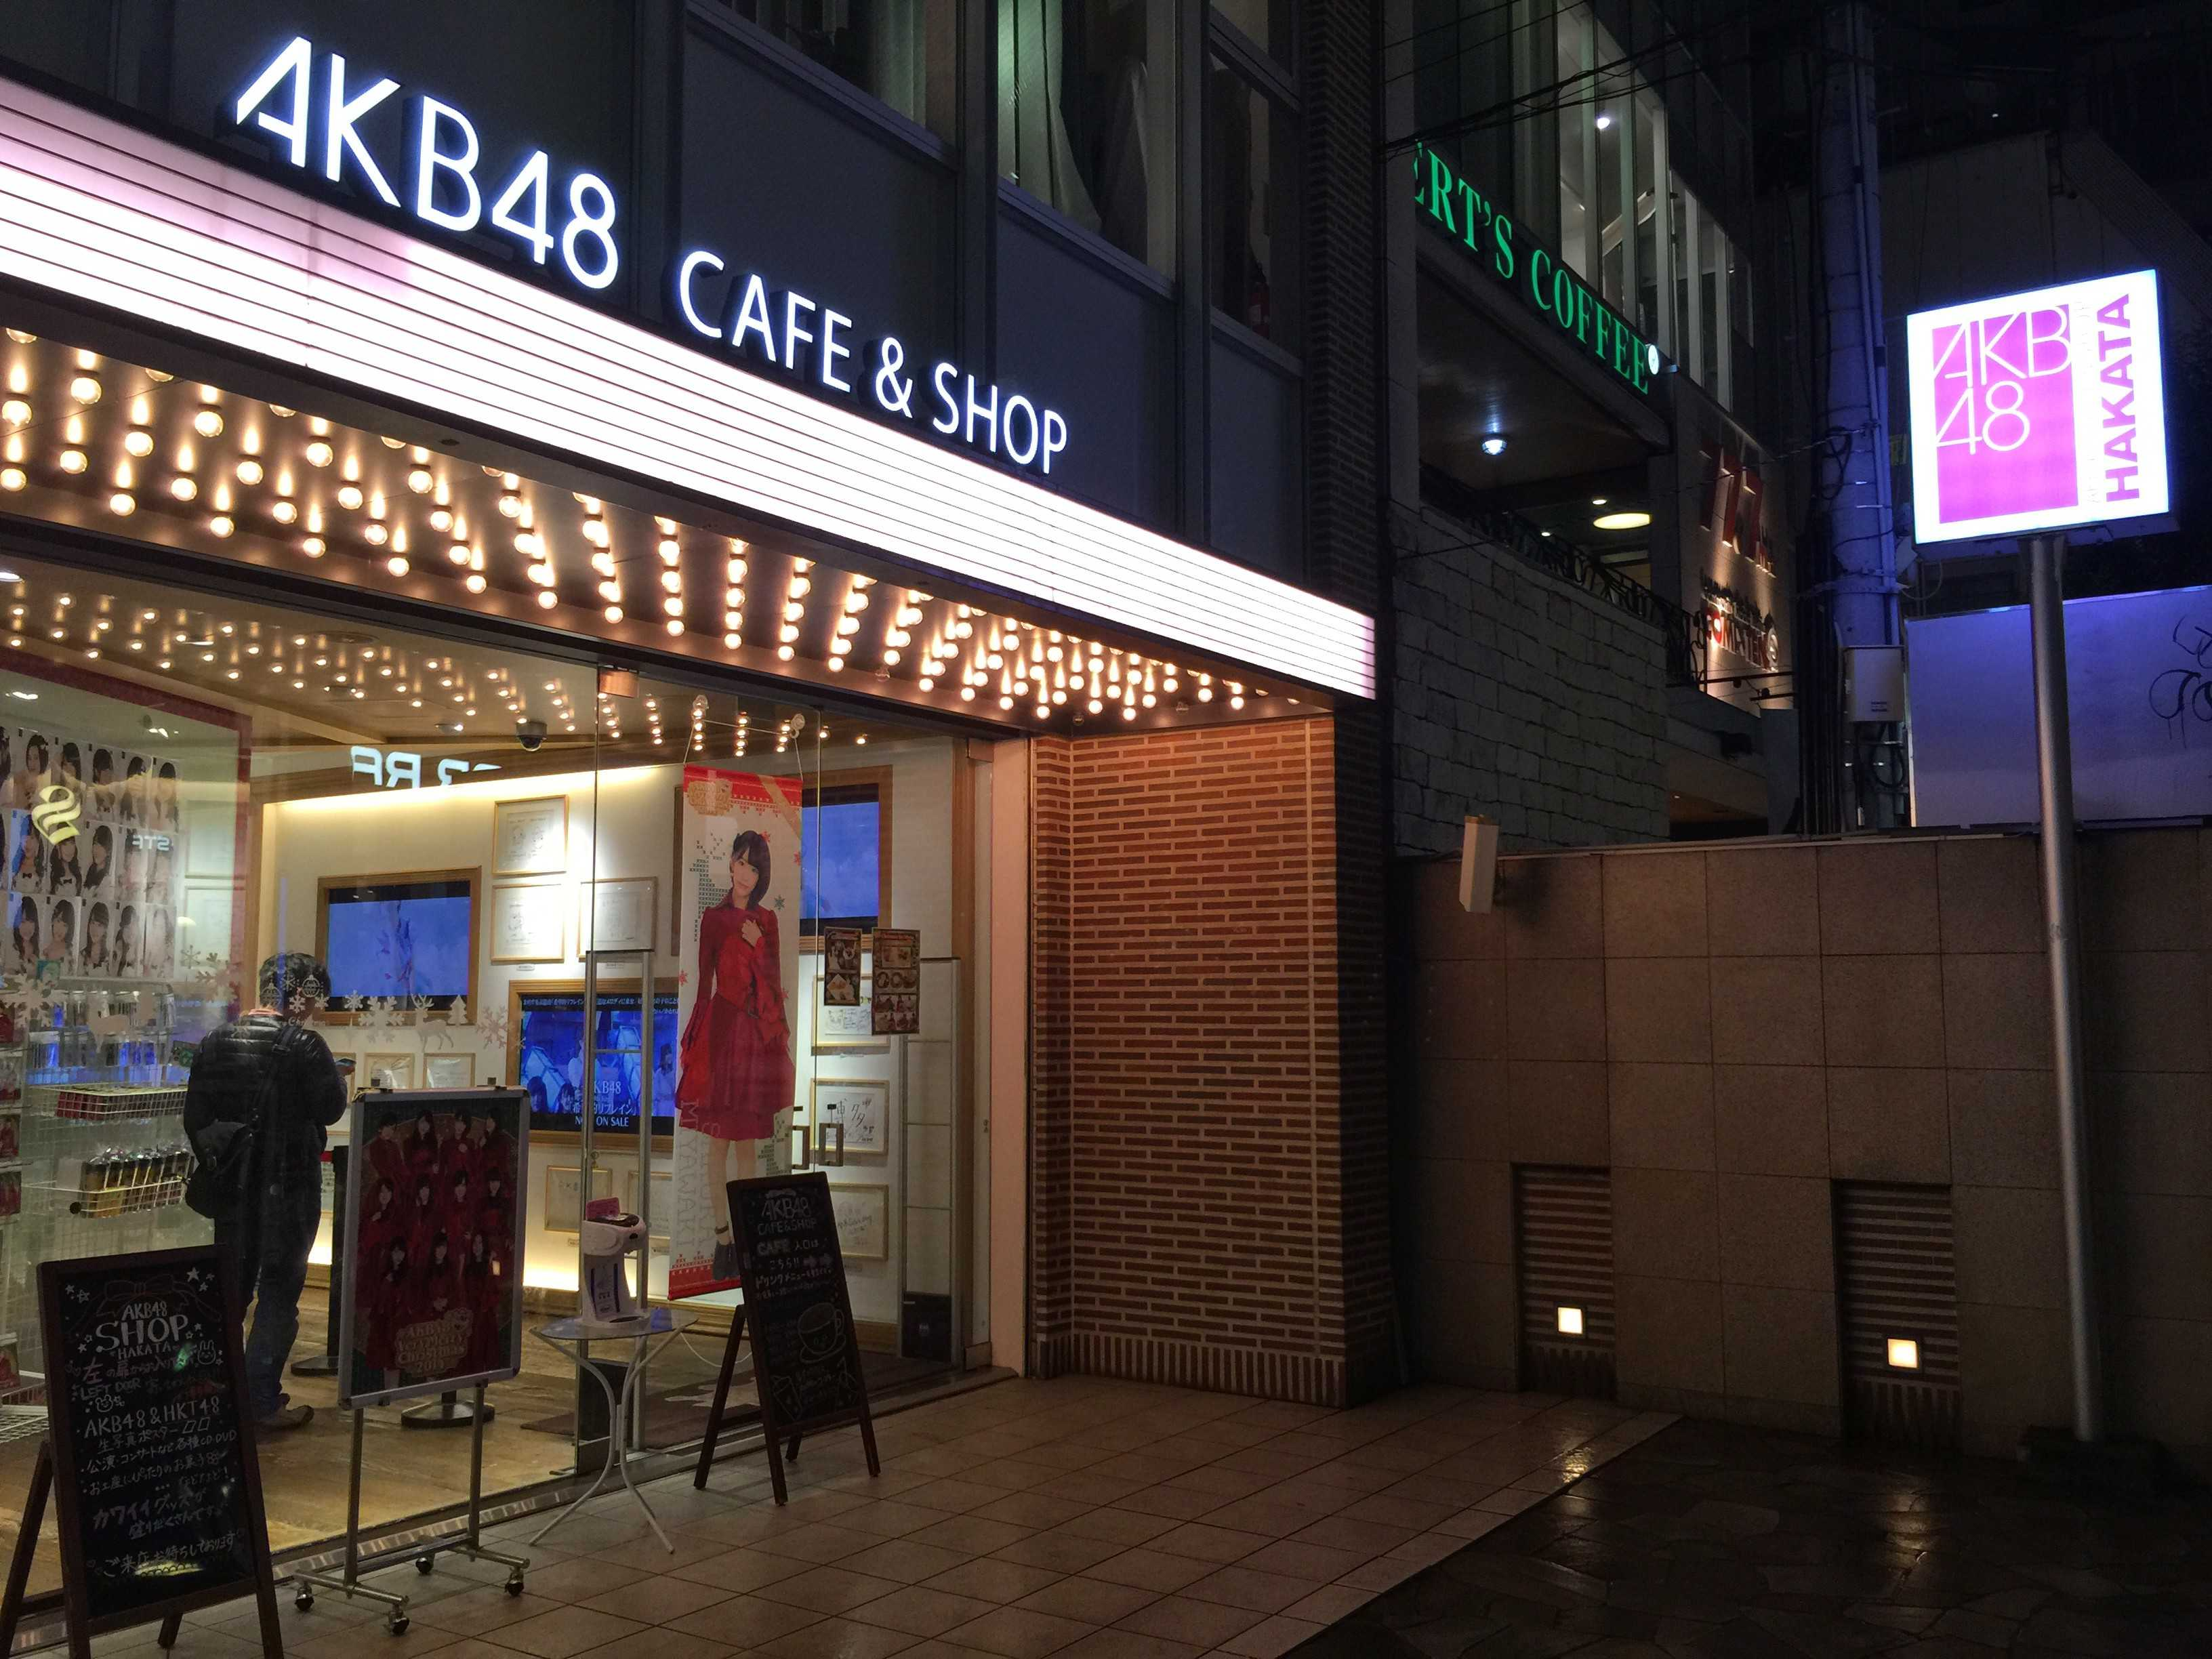 A trip to the AKB48 Cafe & Shop in Fukuoka, Japan